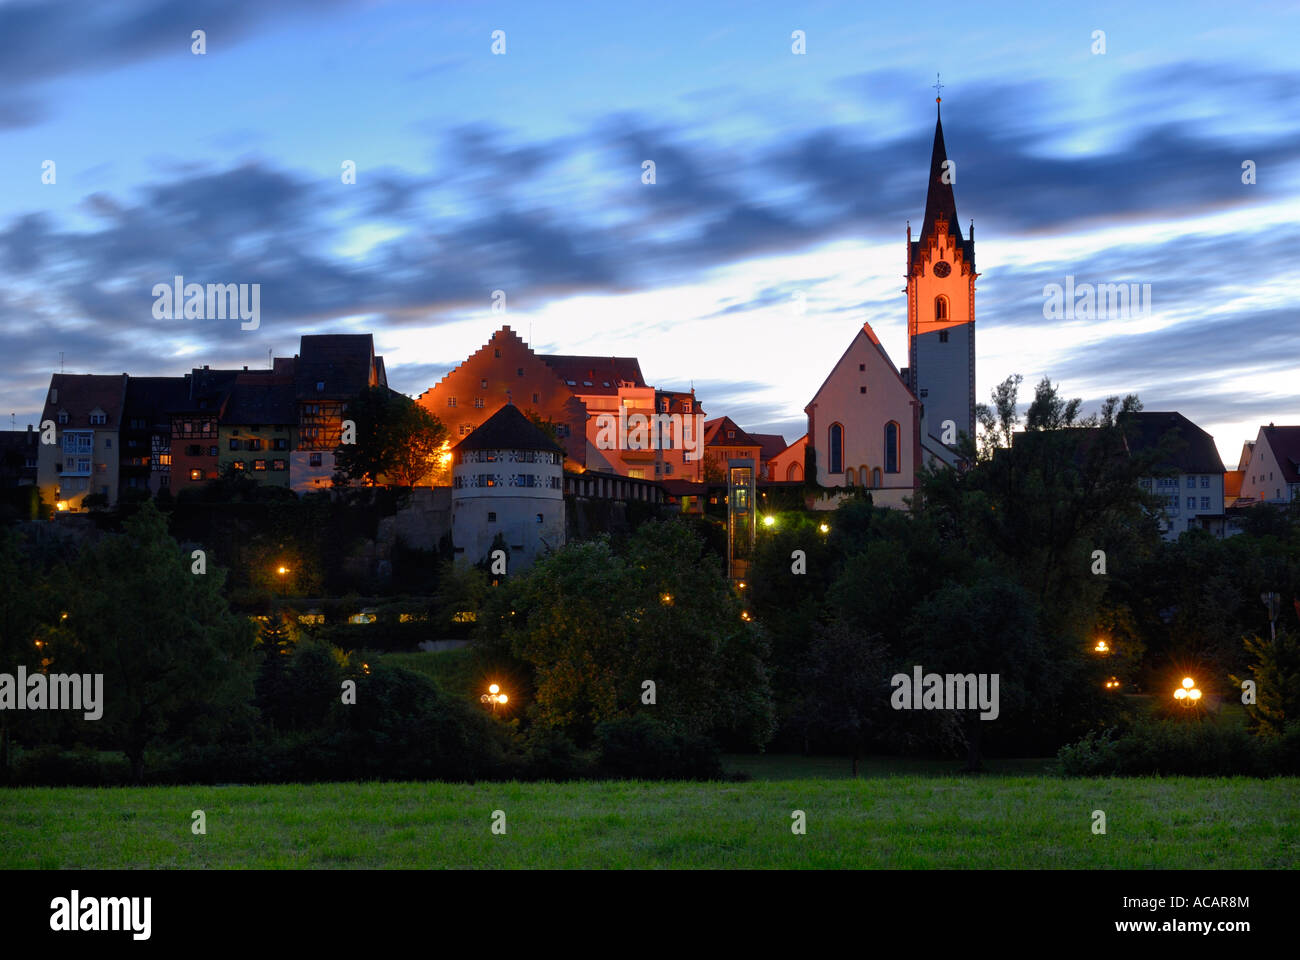 Skyline from the old town of Engen, Baden Wuerttemberg, Germany, Europe. Stock Photo